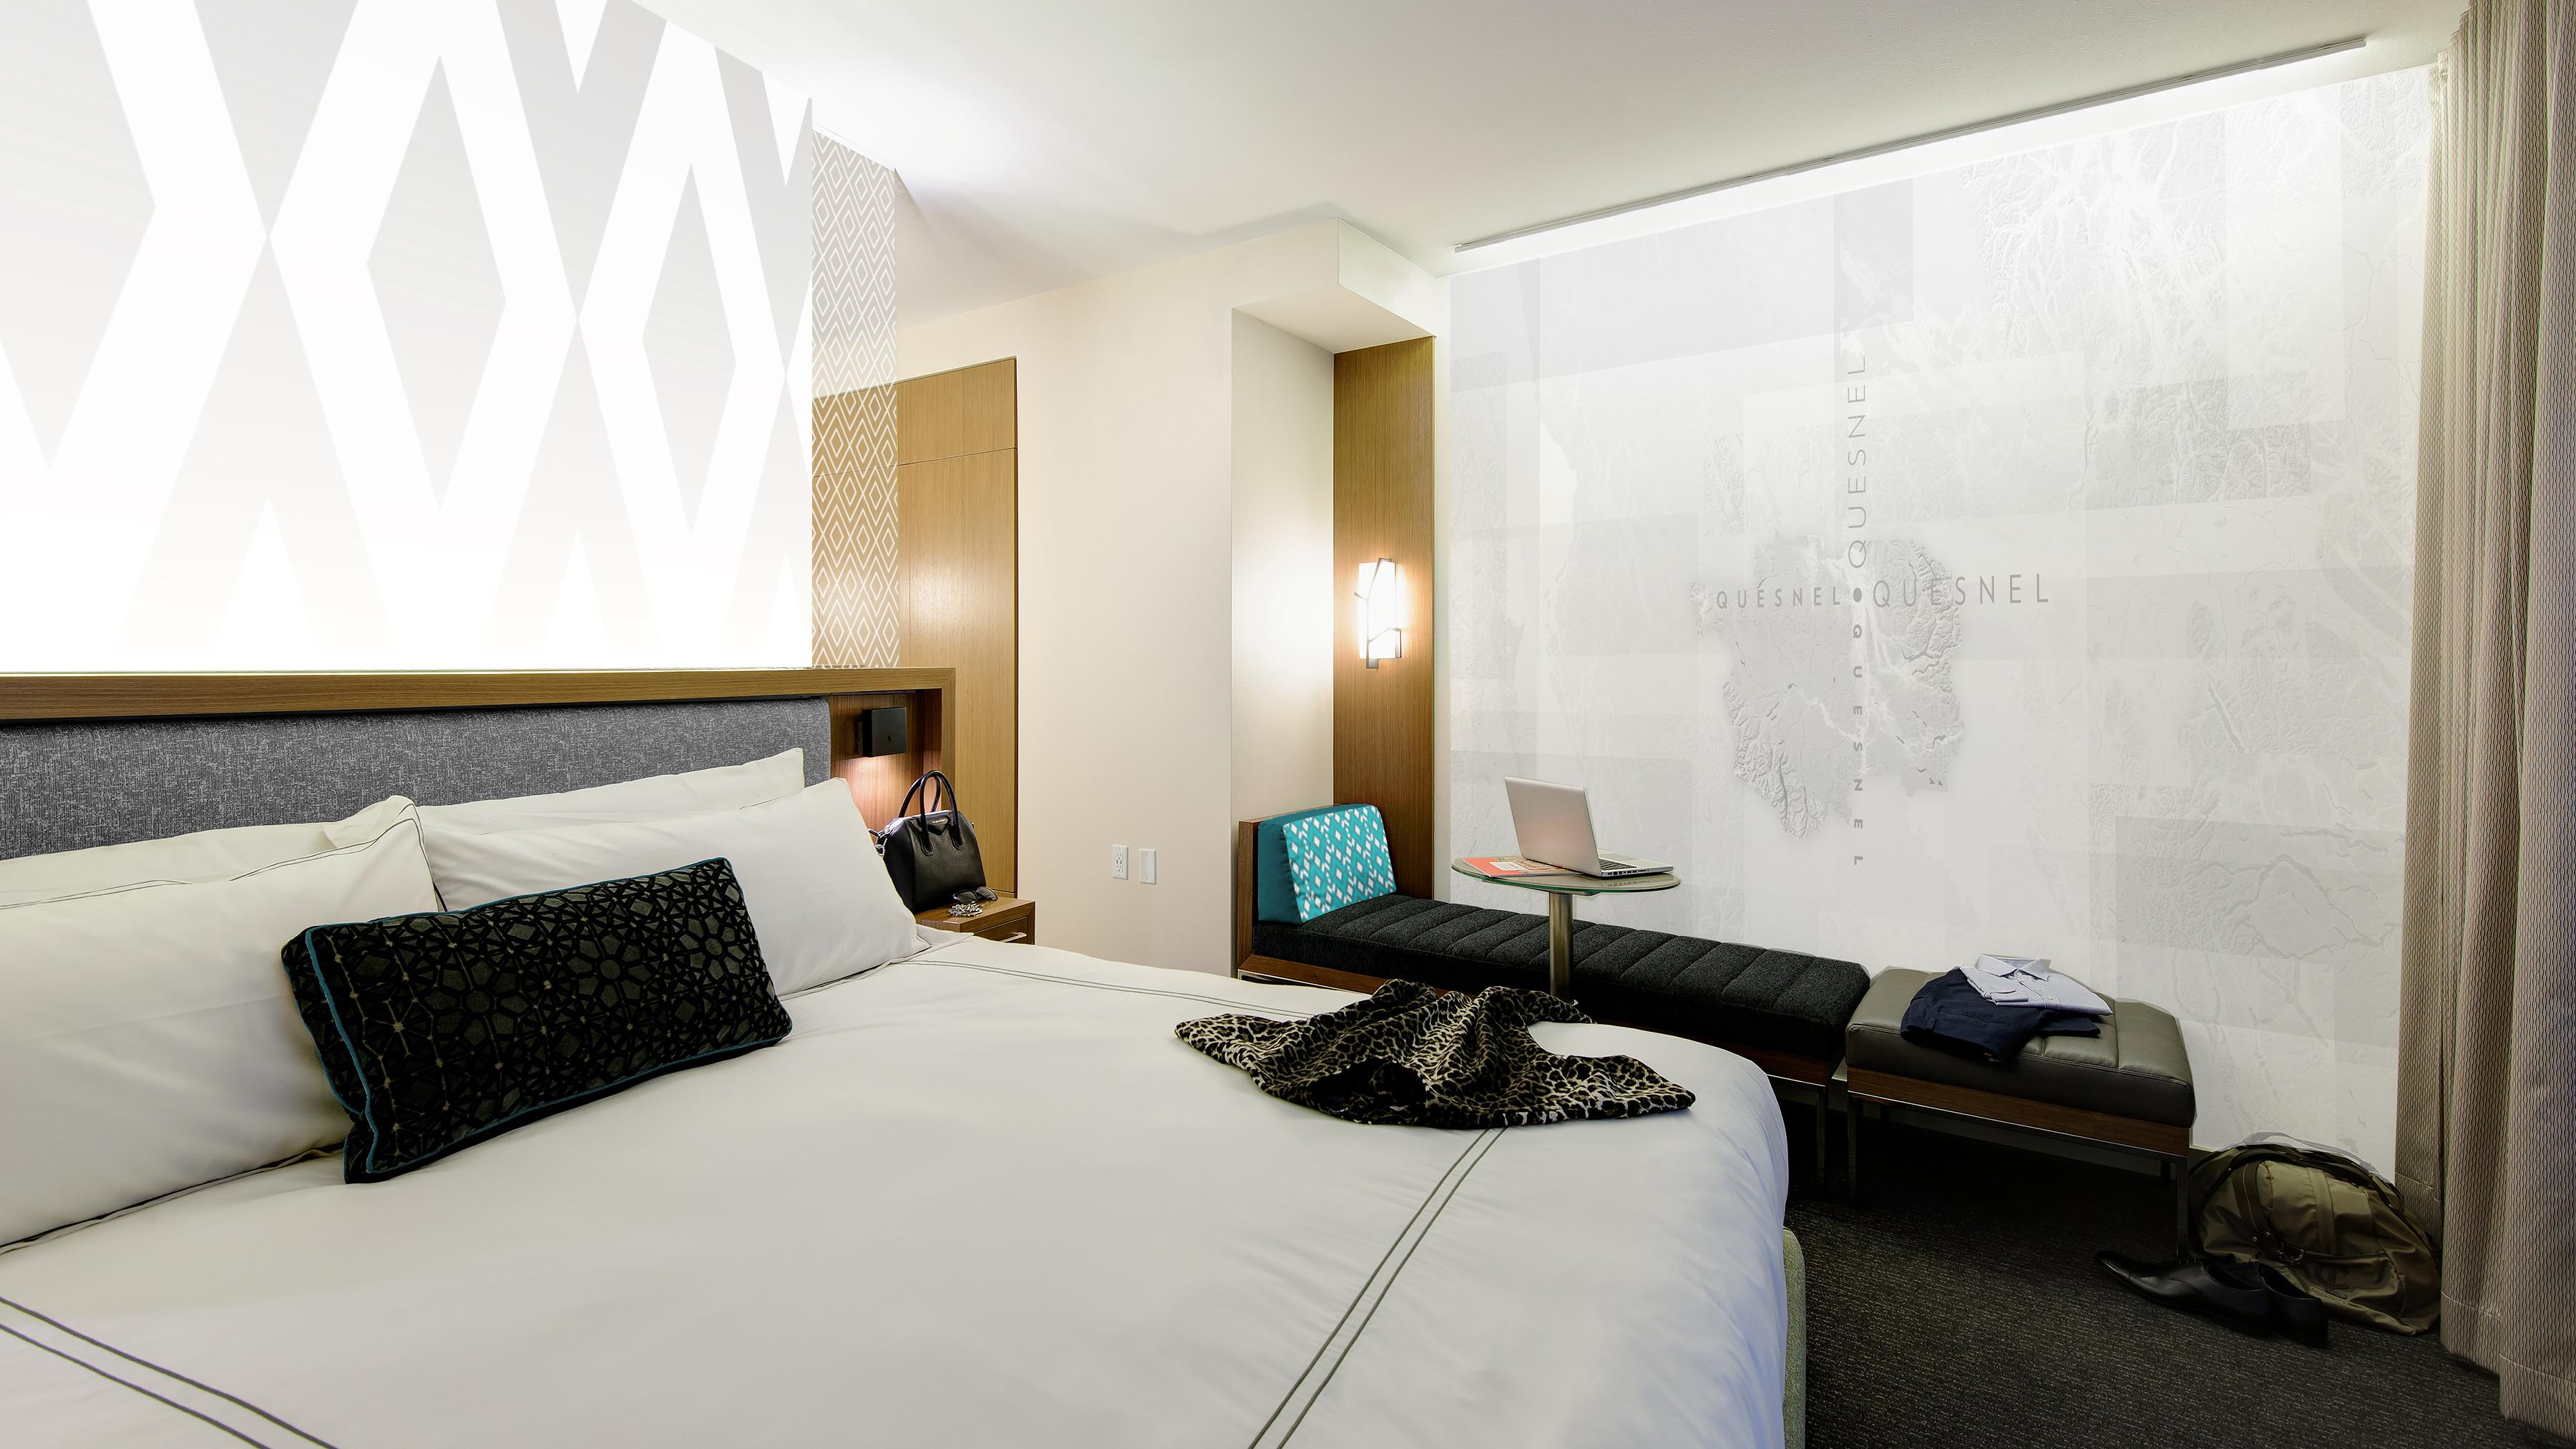 Civic Hotel Adopts Best Room Hospitality Technology Trends